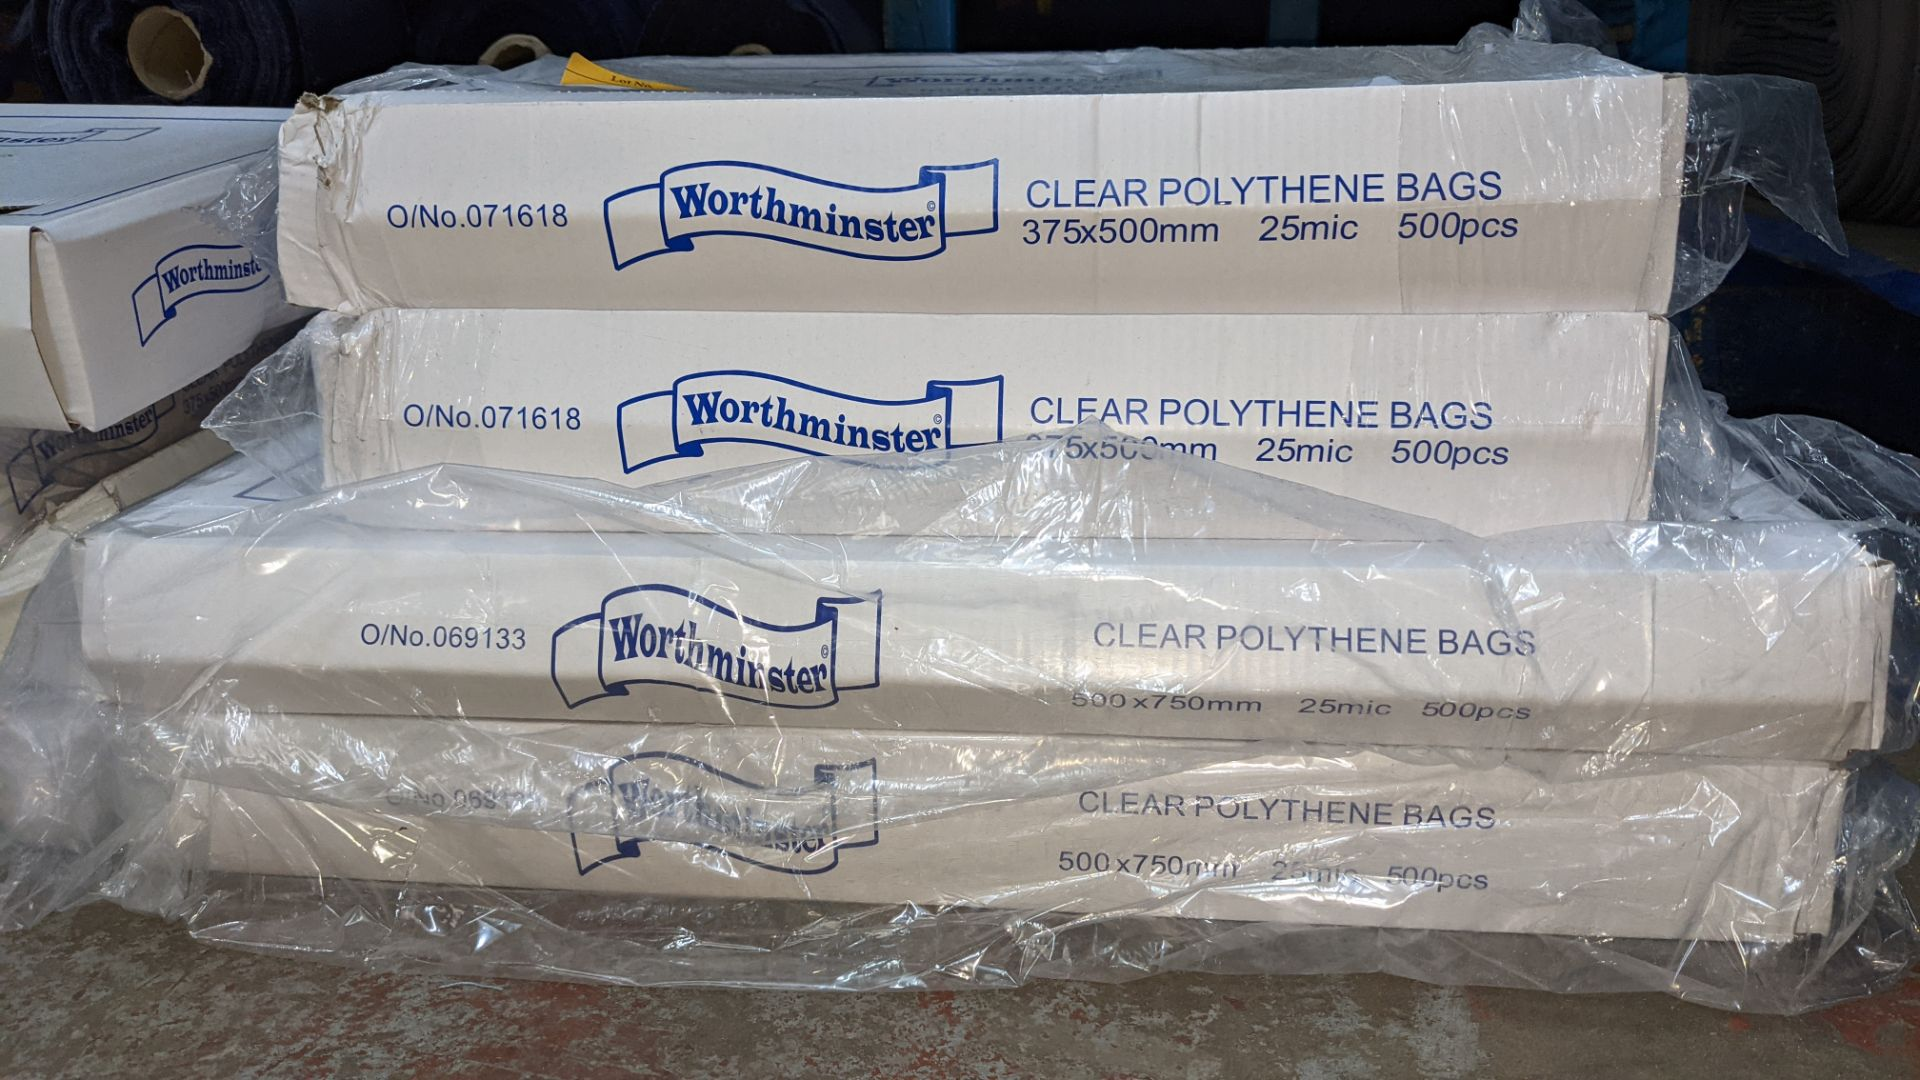 4 boxes of clear food bags by Worthminster - Image 5 of 5